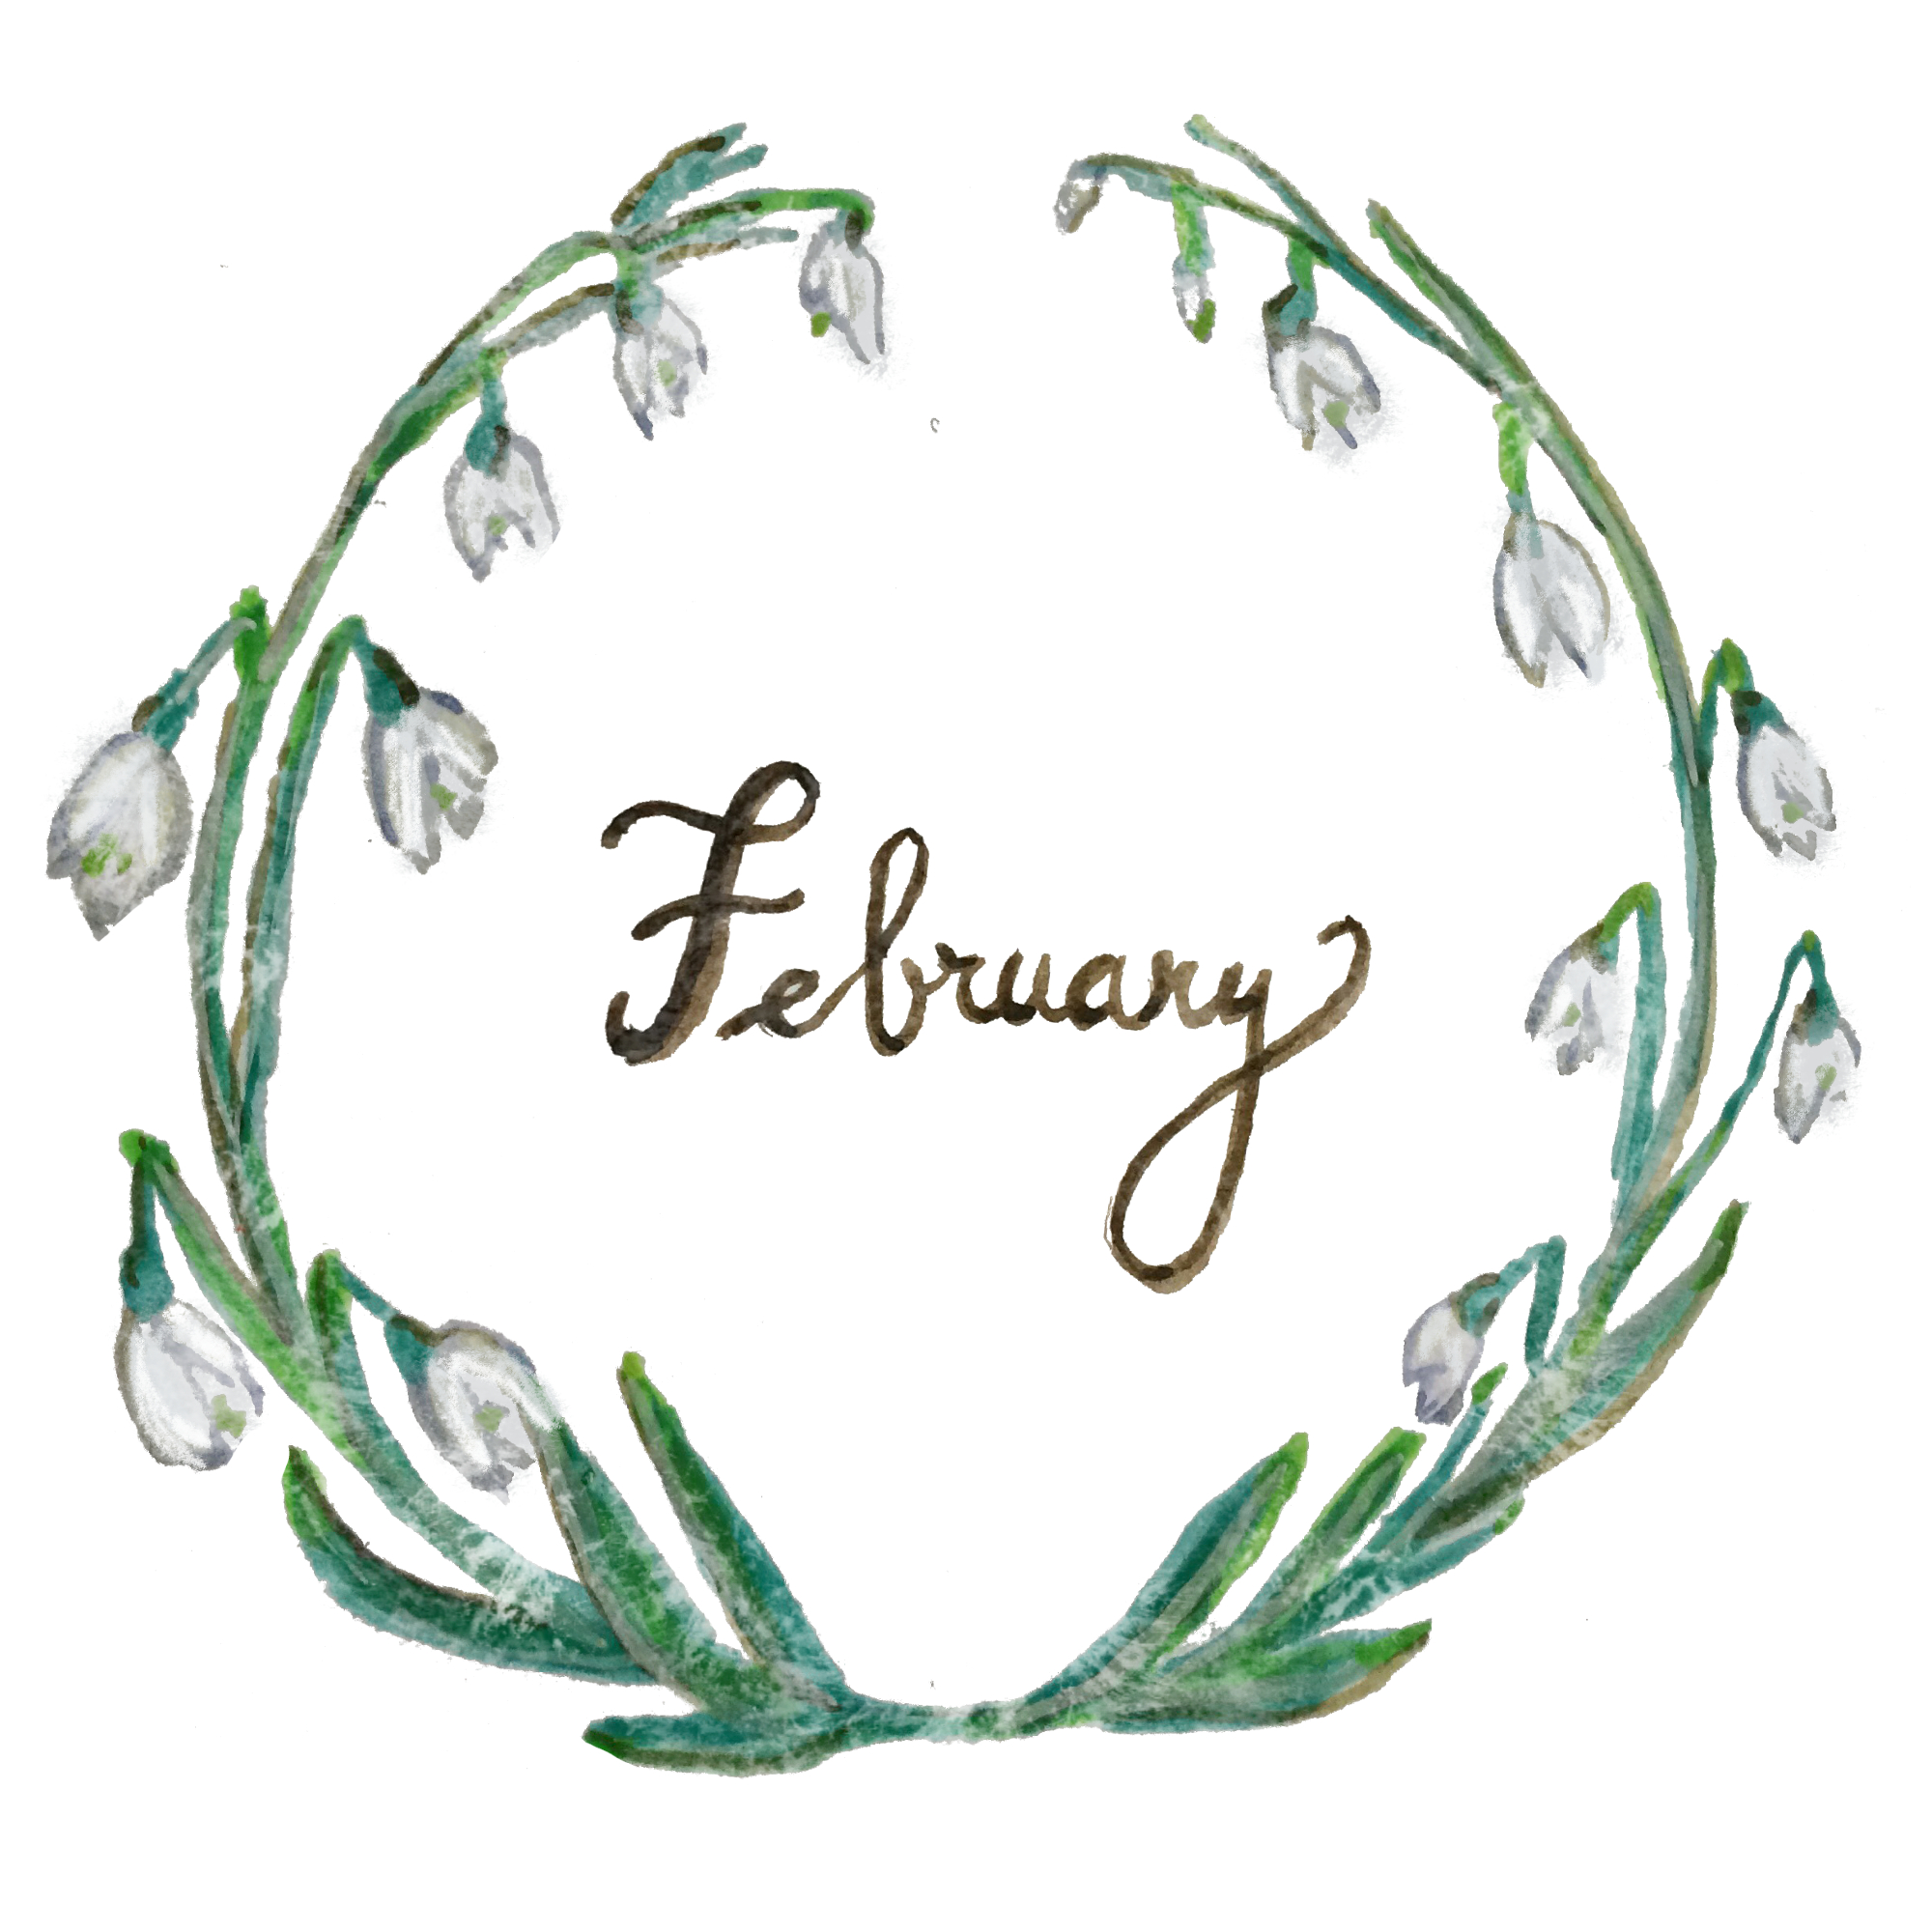 February by Emily maguin